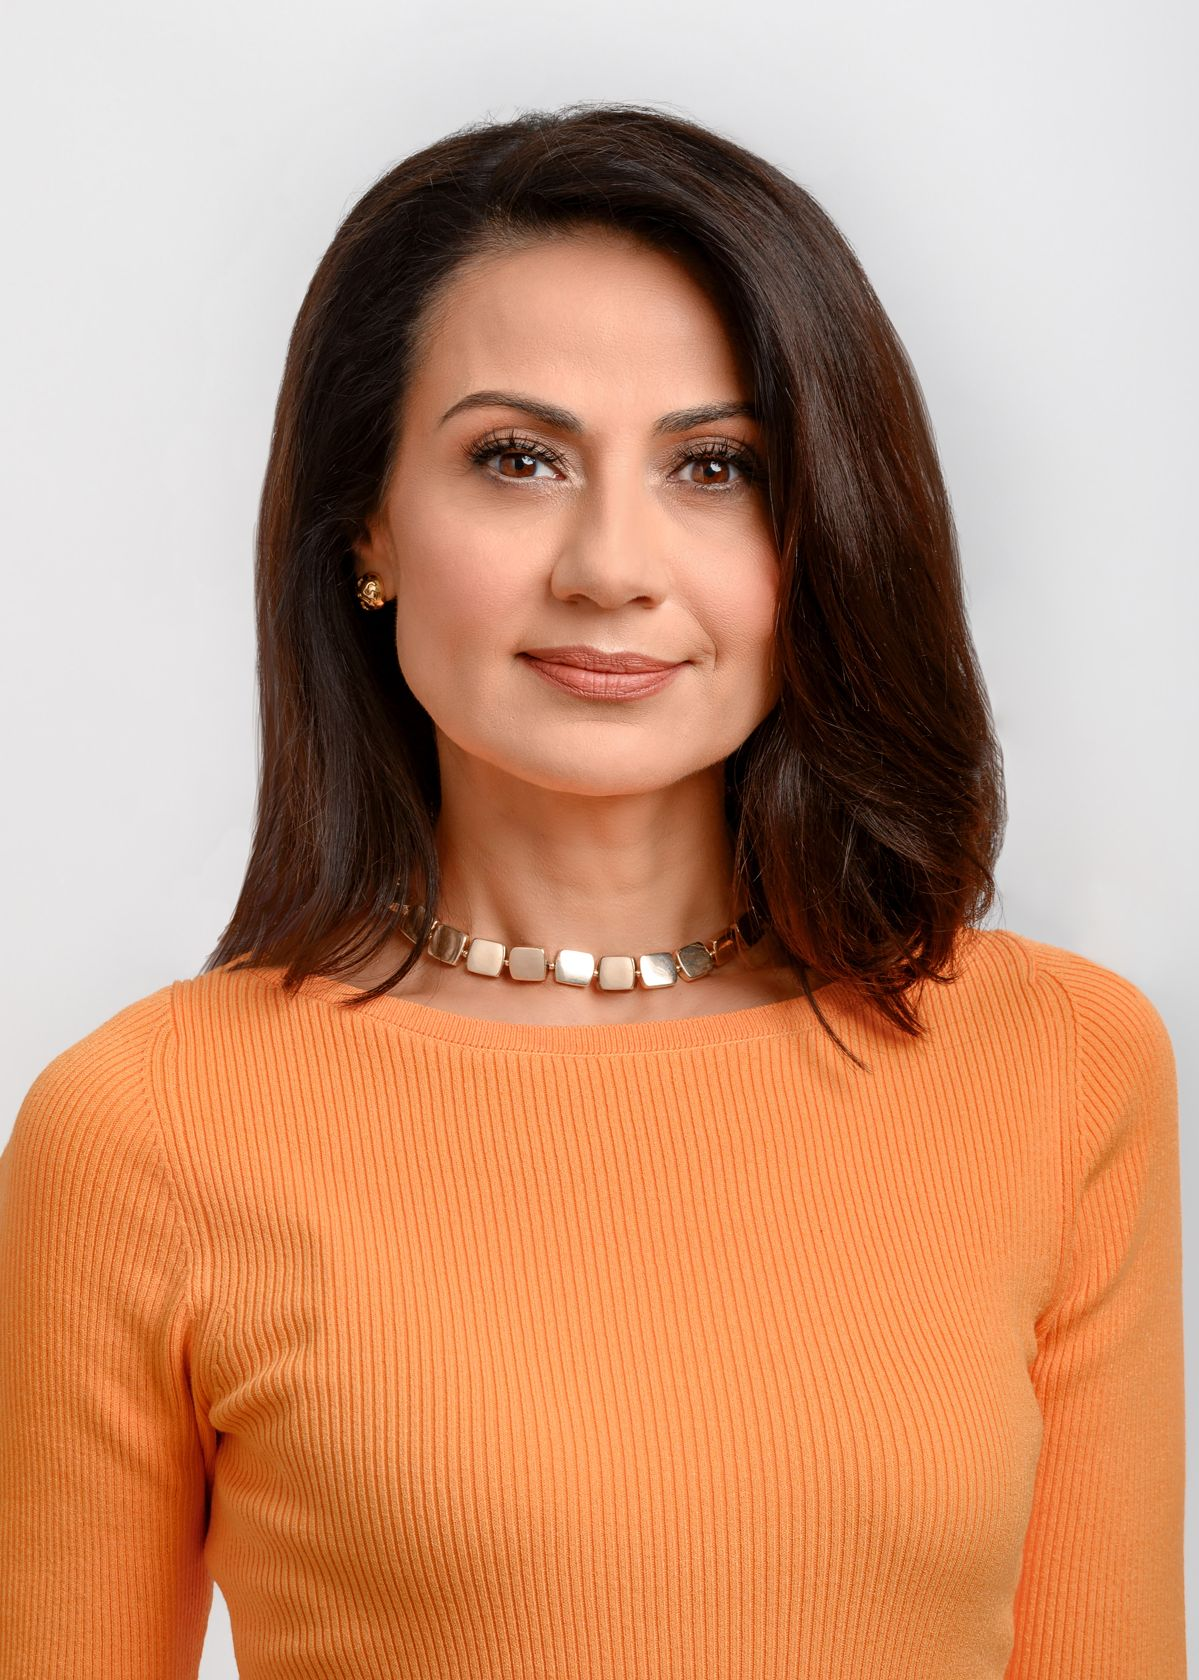 NBCUniversal Telemundo Enterprises Promotes Mónica Gil to EVP, Chief Administrative and Marketing Officer, NBCUniversal